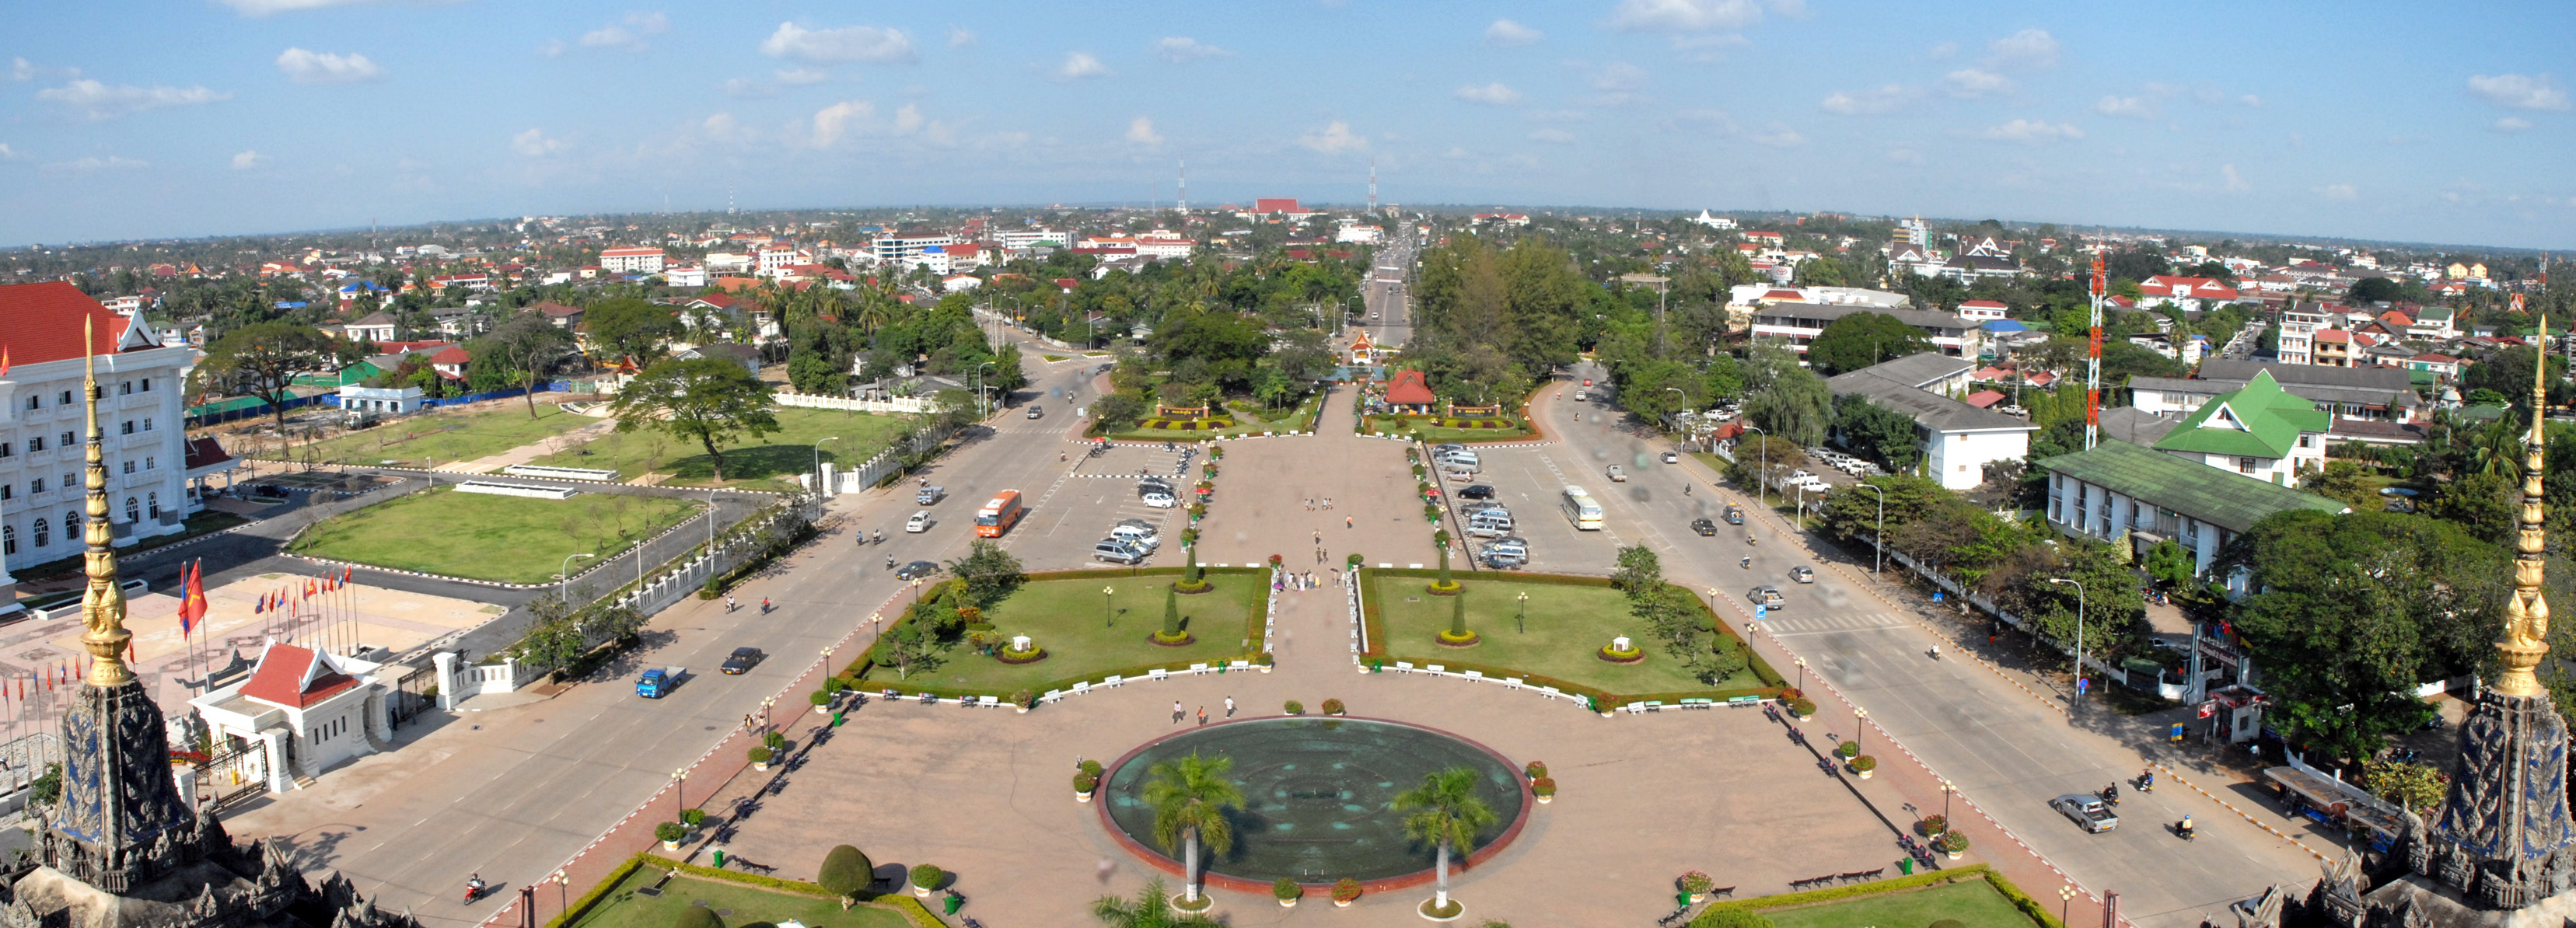 Vientiane Laos  city pictures gallery : Vientiane Patouxai Laos Wikimedia Commons